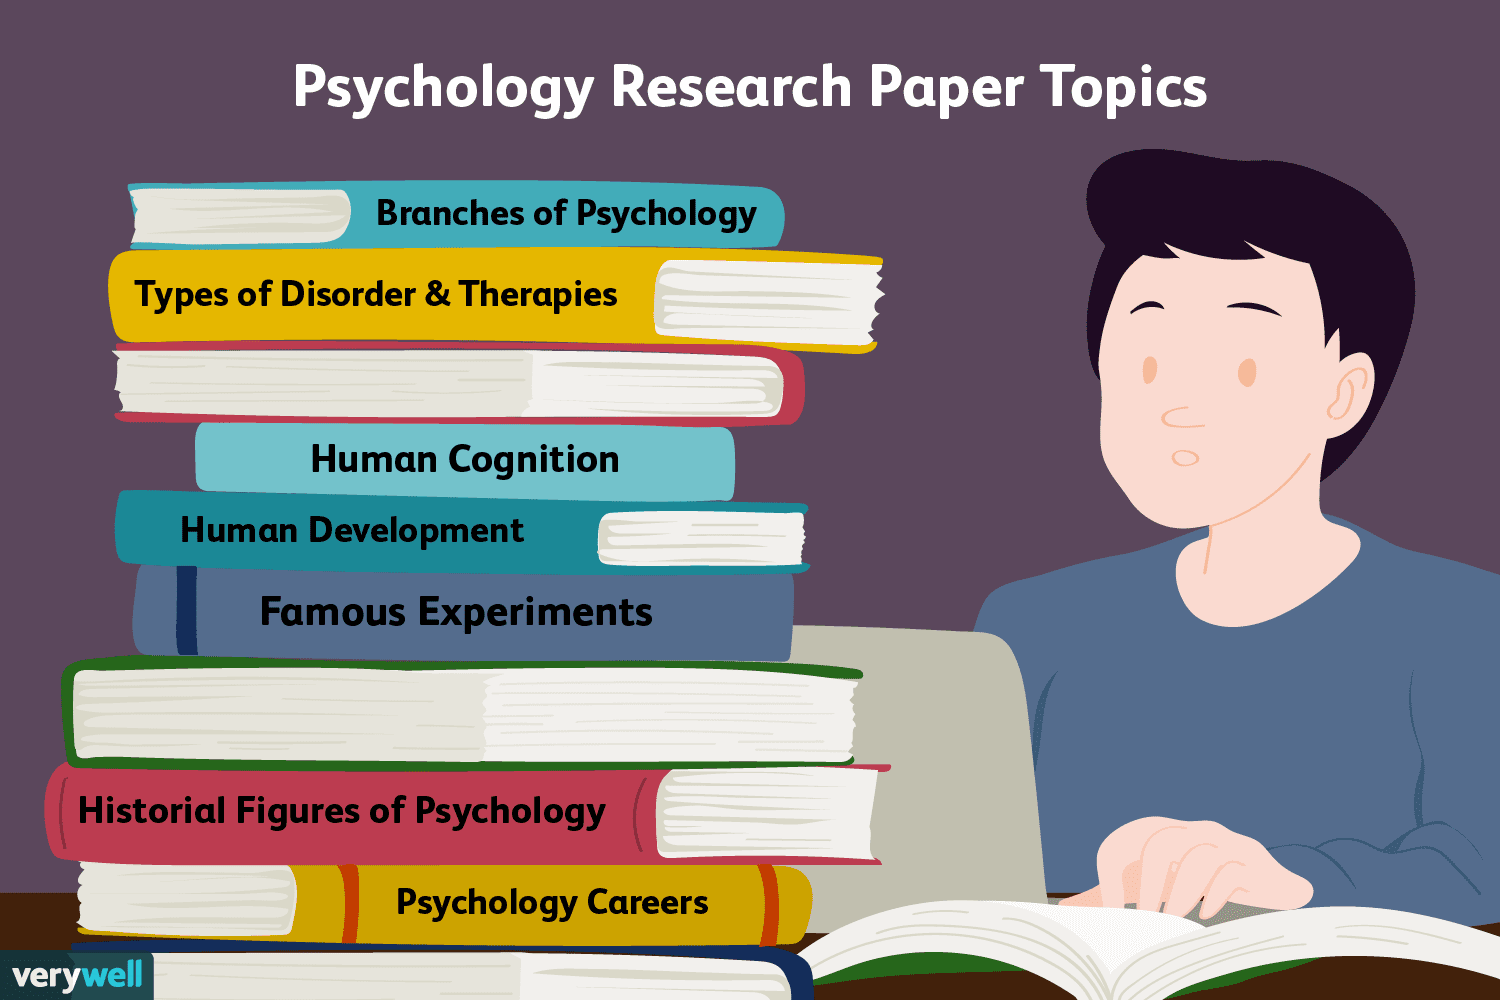 Psychology Research Paper Topics: 50+ Great Ideas